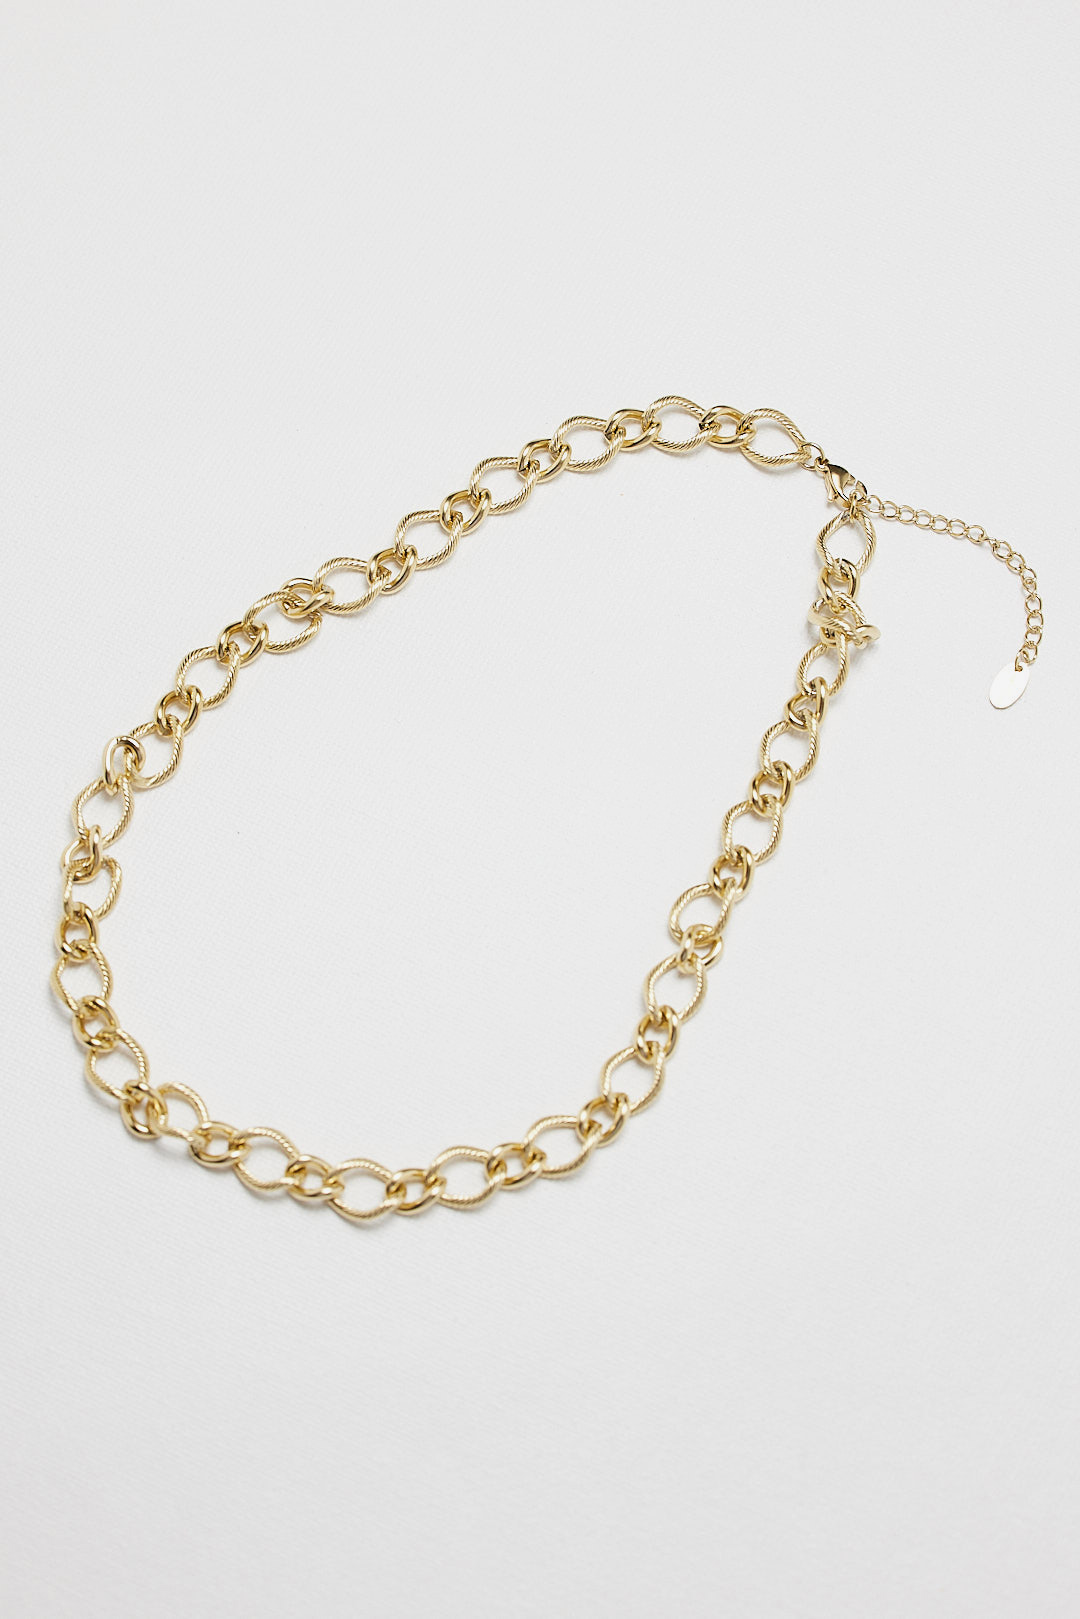 Skye Chain Necklace